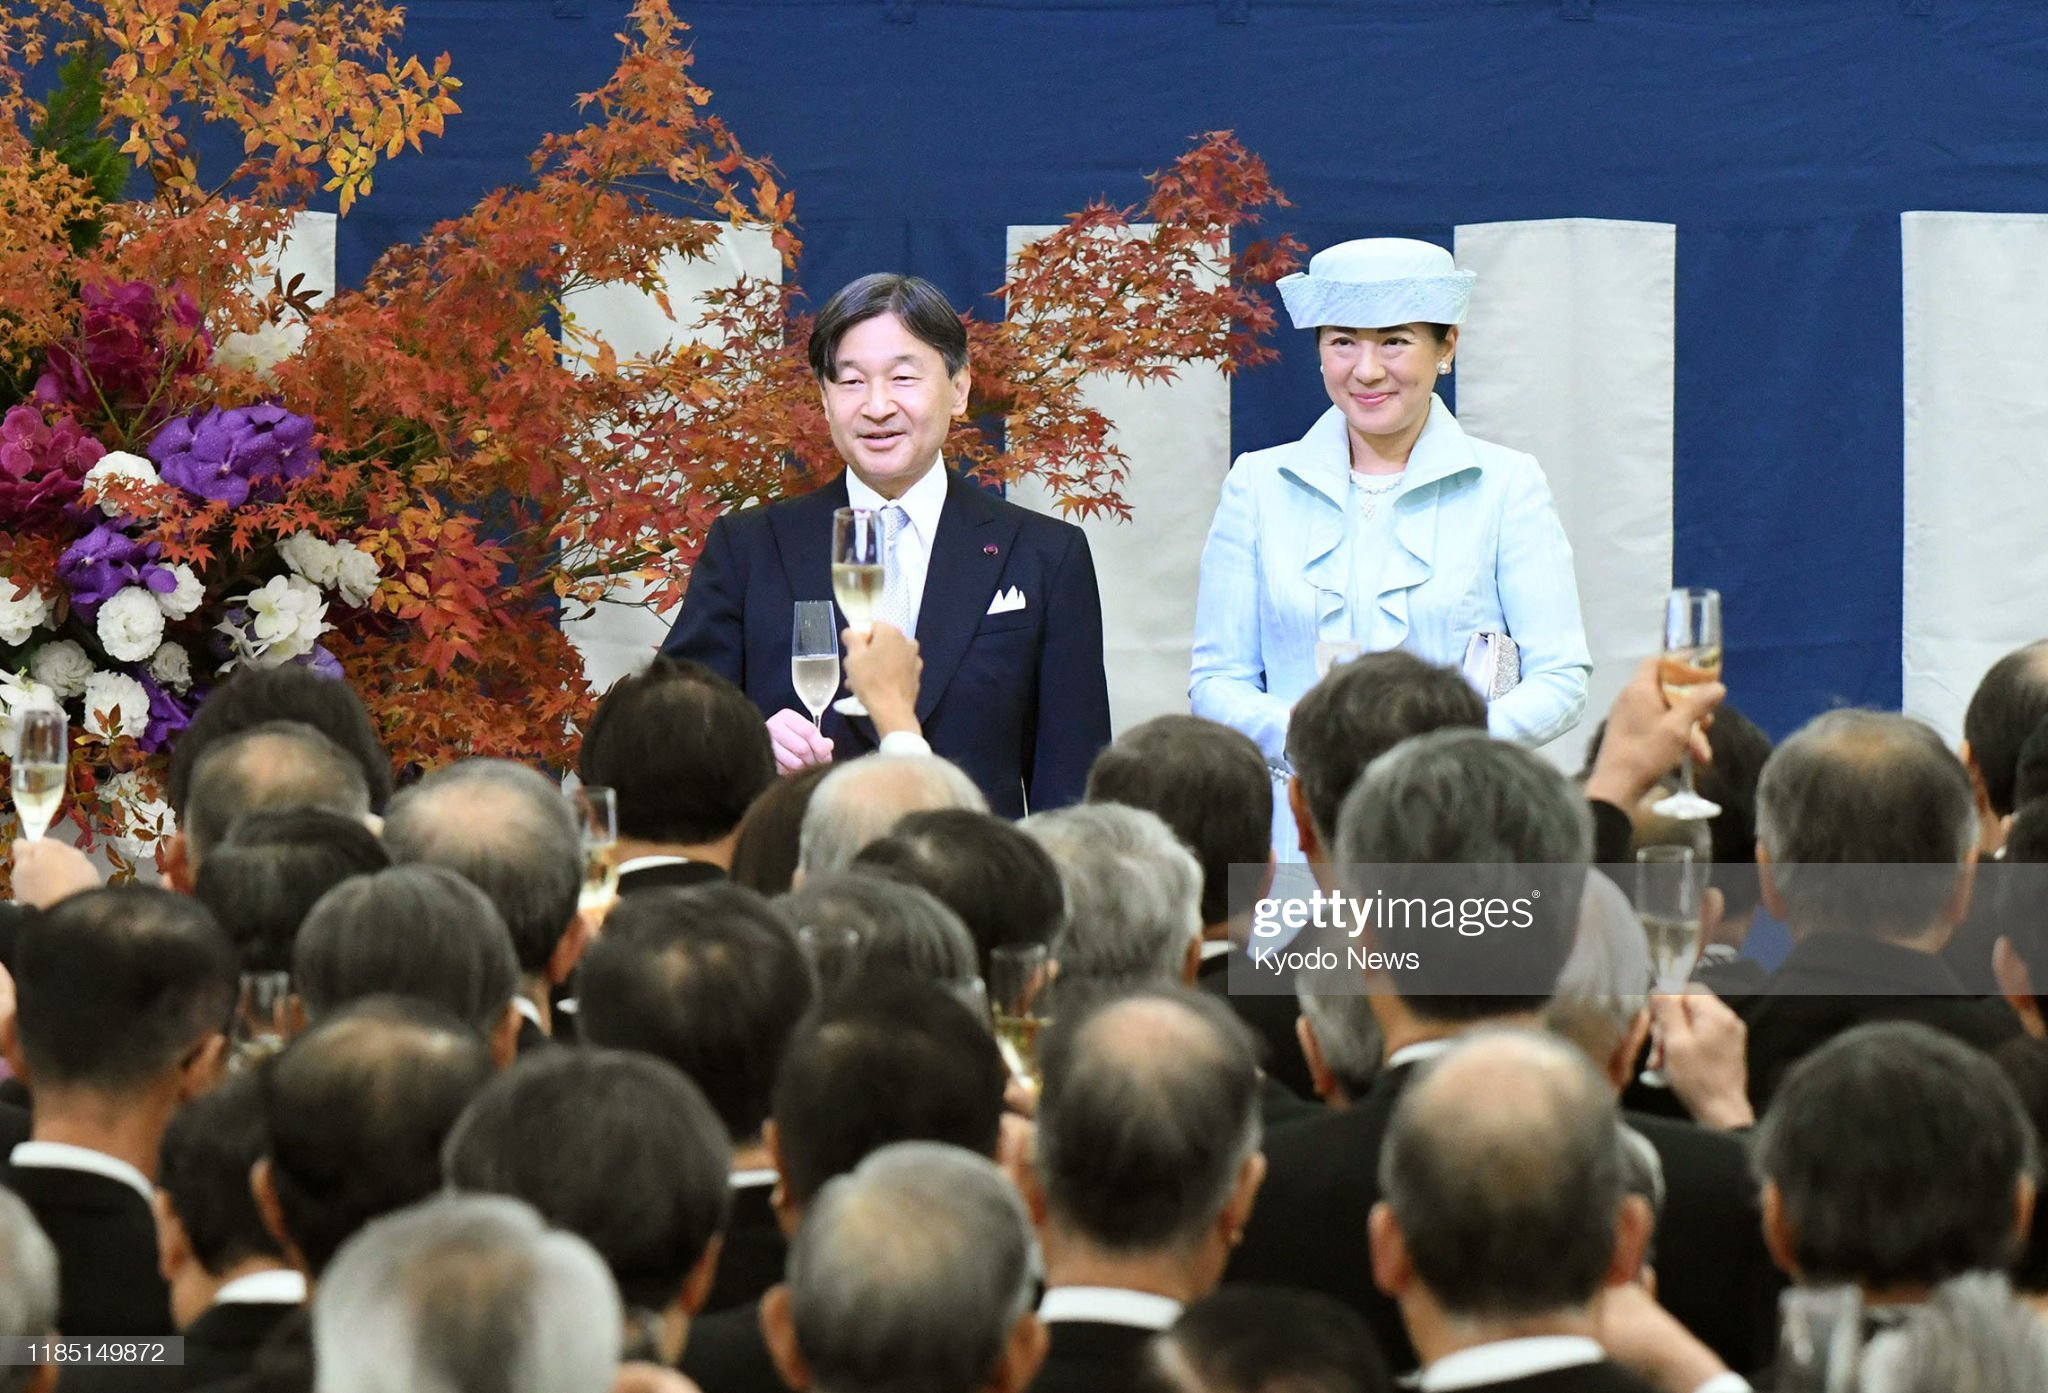 japanese-emperor-naruhito-and-empress-masako-attend-a-tea-party-by-picture-id1185149872